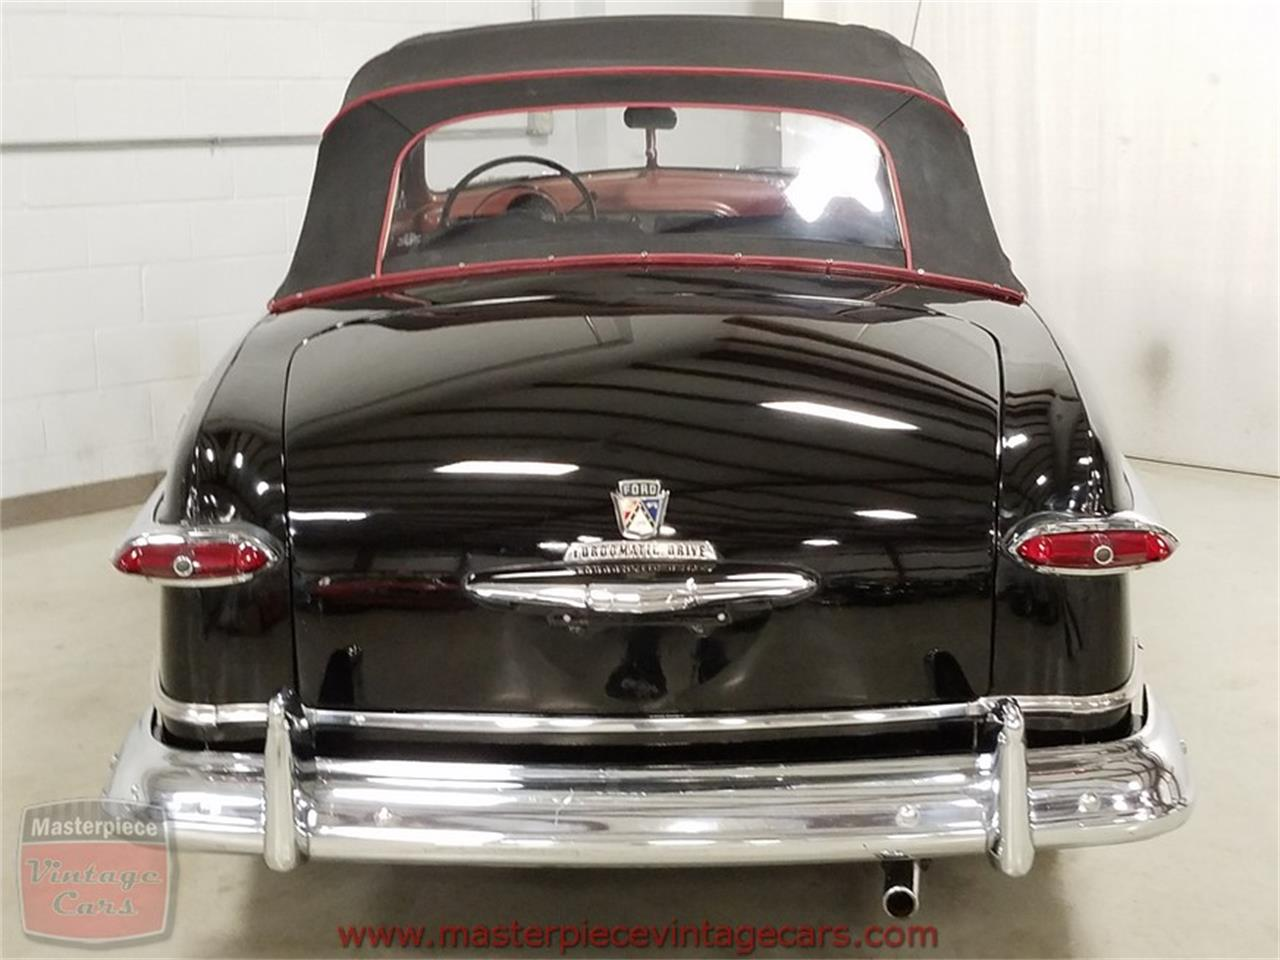 Large Picture of 1951 Ford Convertible Offered by Masterpiece Vintage Cars - KAMX